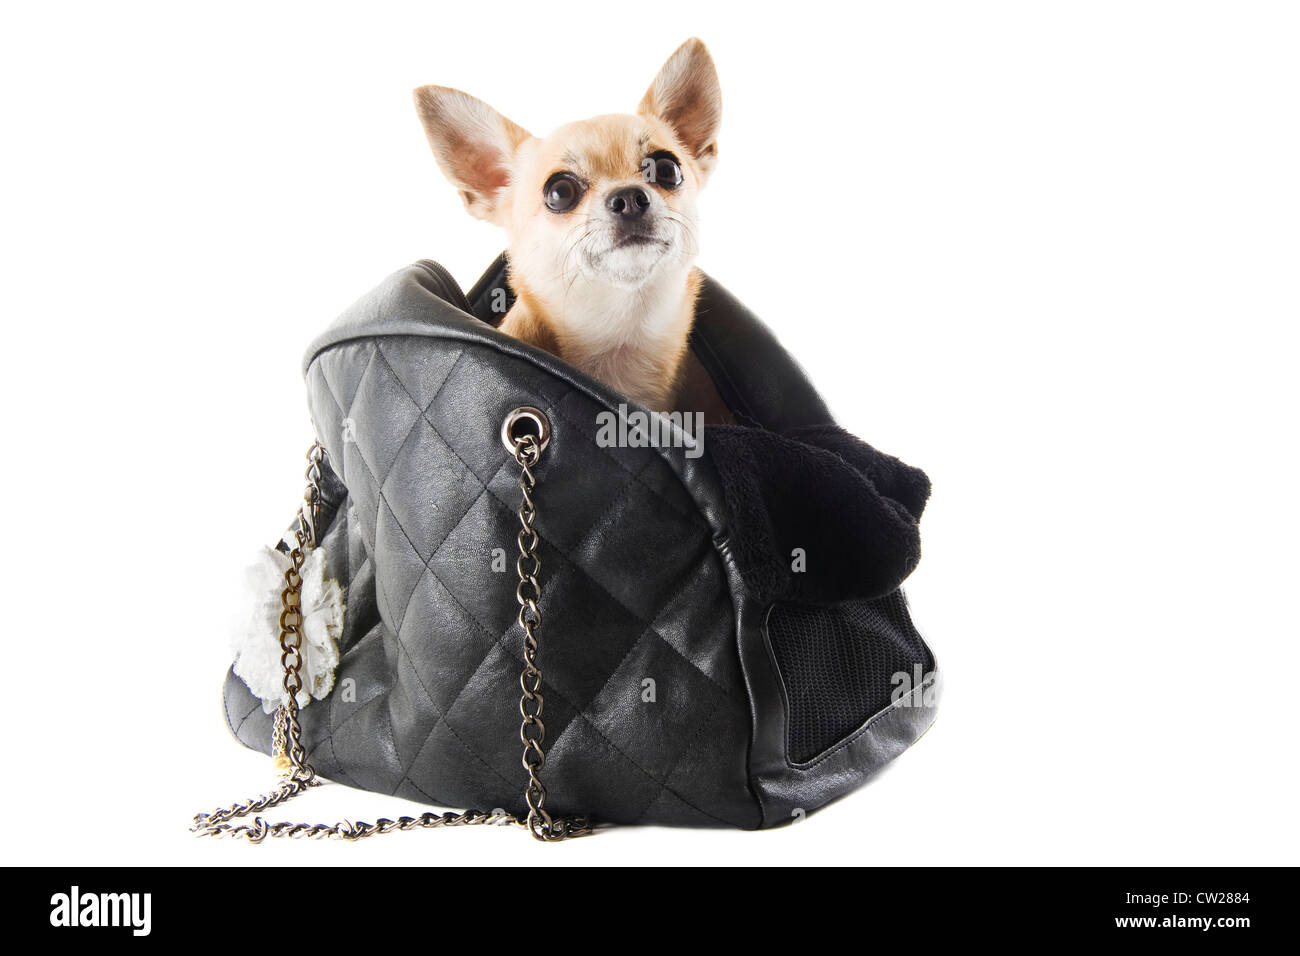 travel bag with chihuahua in front of white background - Stock Image